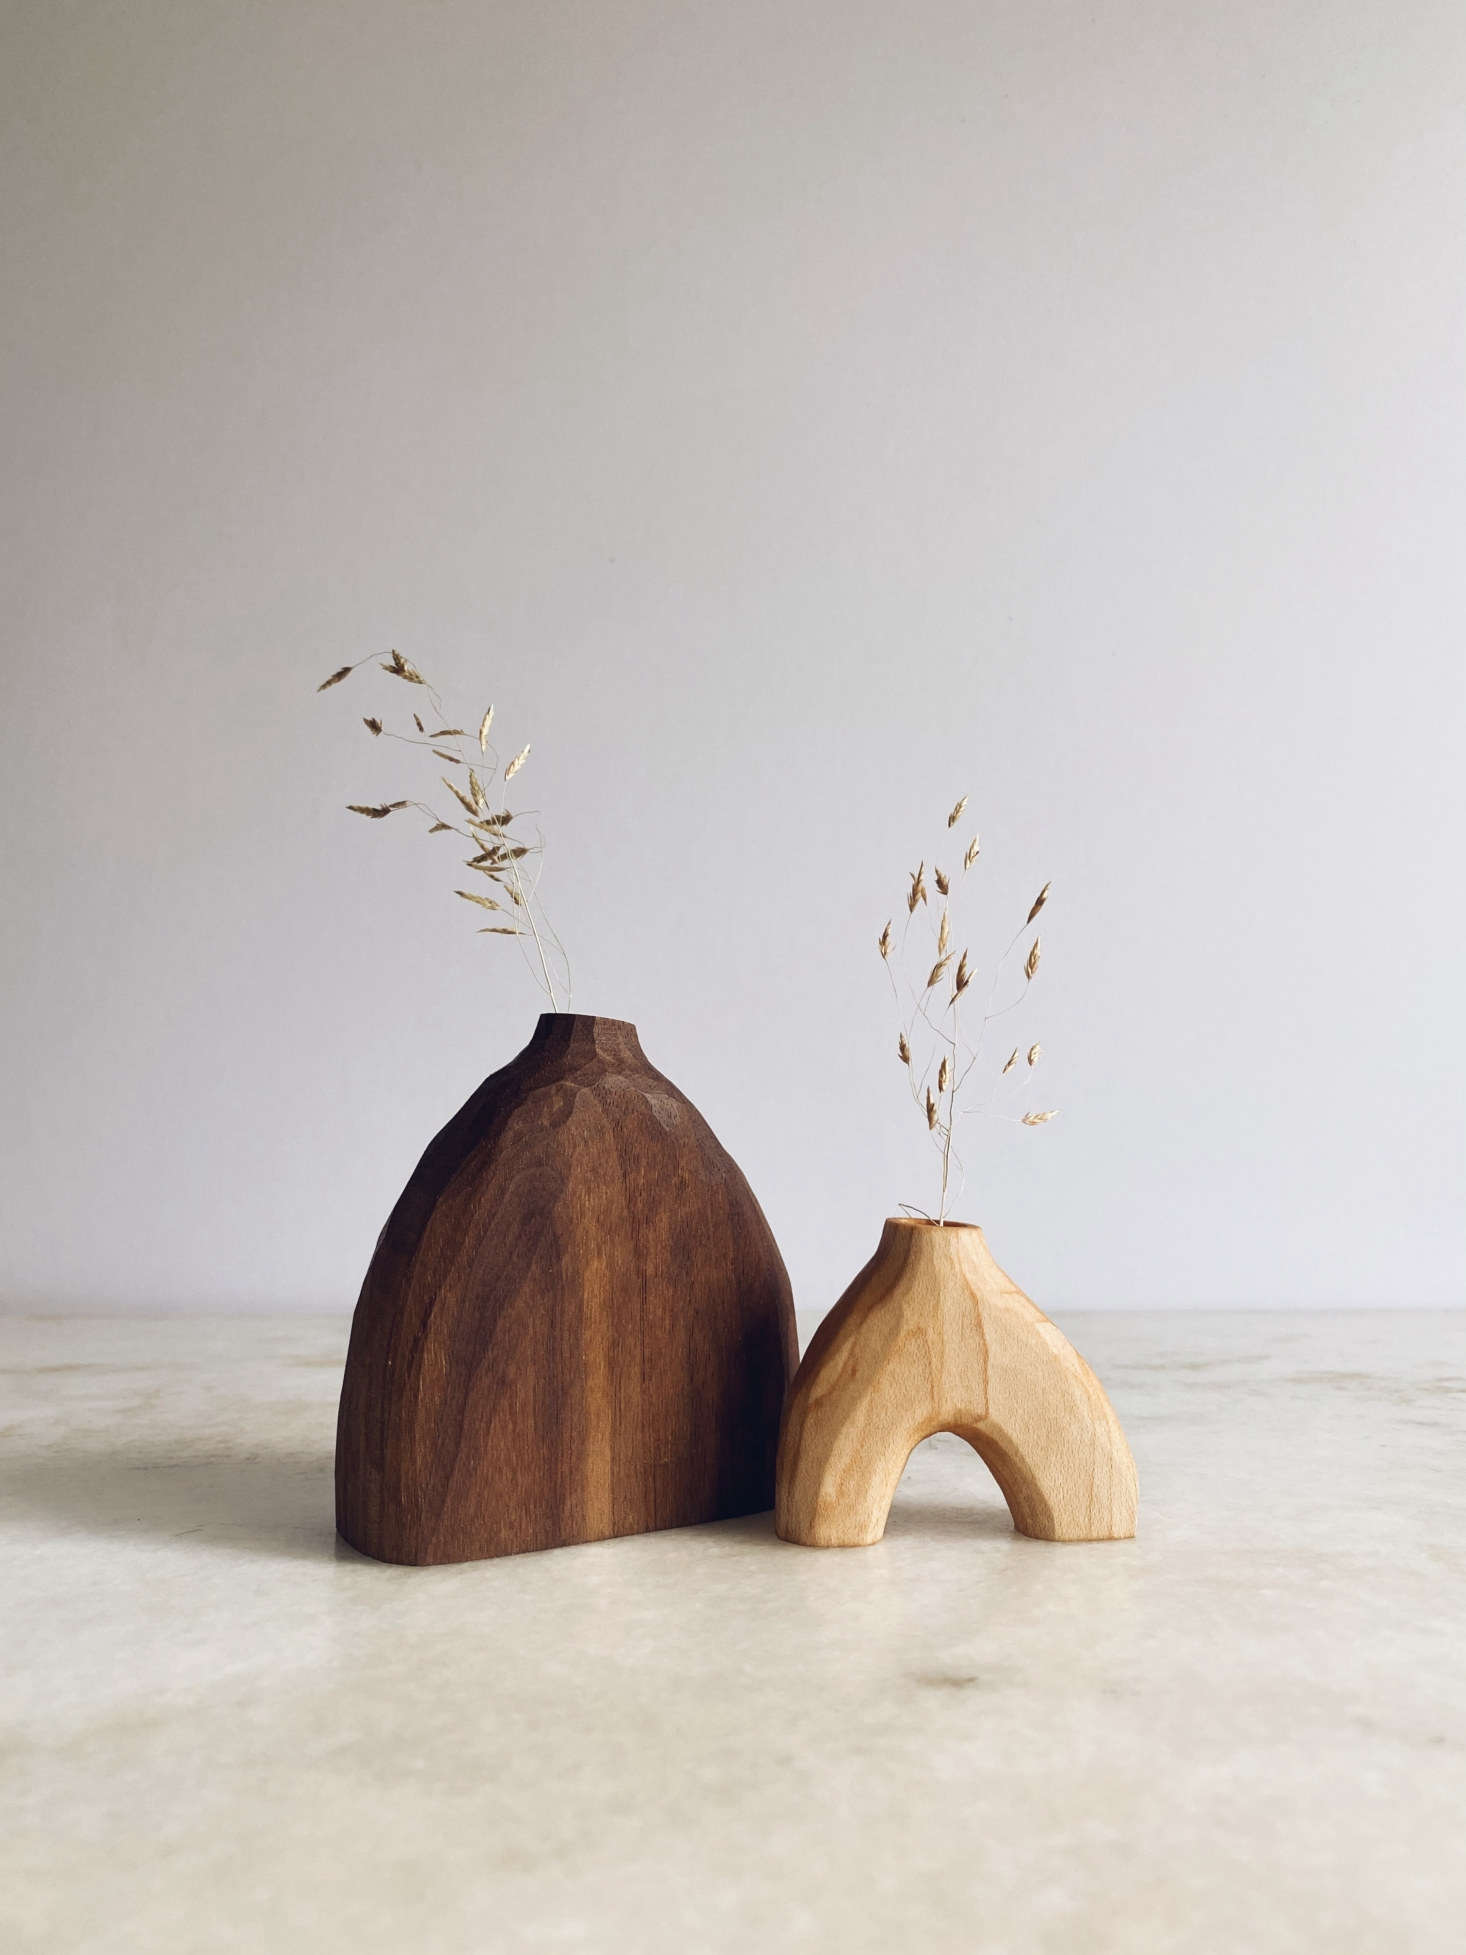 We love these hand-carved wooden vases by Grain and Knot. See Currently Coveting: London Artist Sophie Sellu's Functional Wood Sculptures.